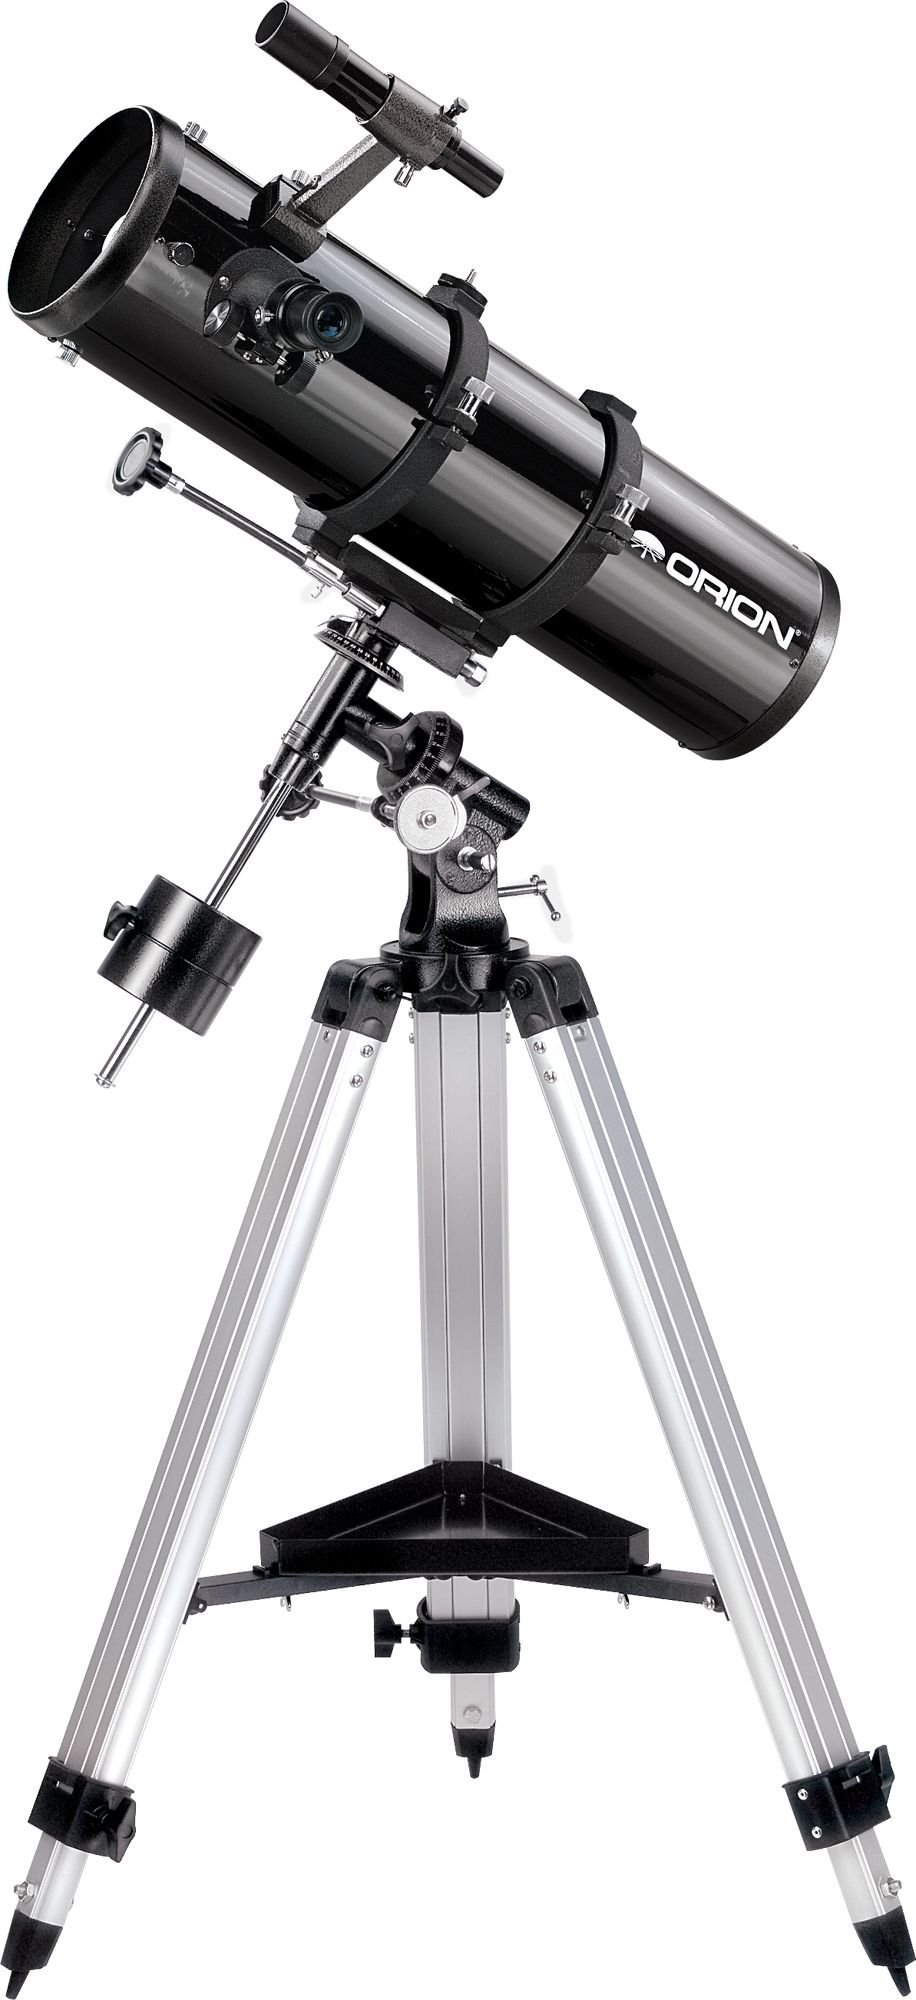 Orion 09007 SpaceProbe 130ST Equatorial Reflector Telescope (Black) (Renewed) by Orion